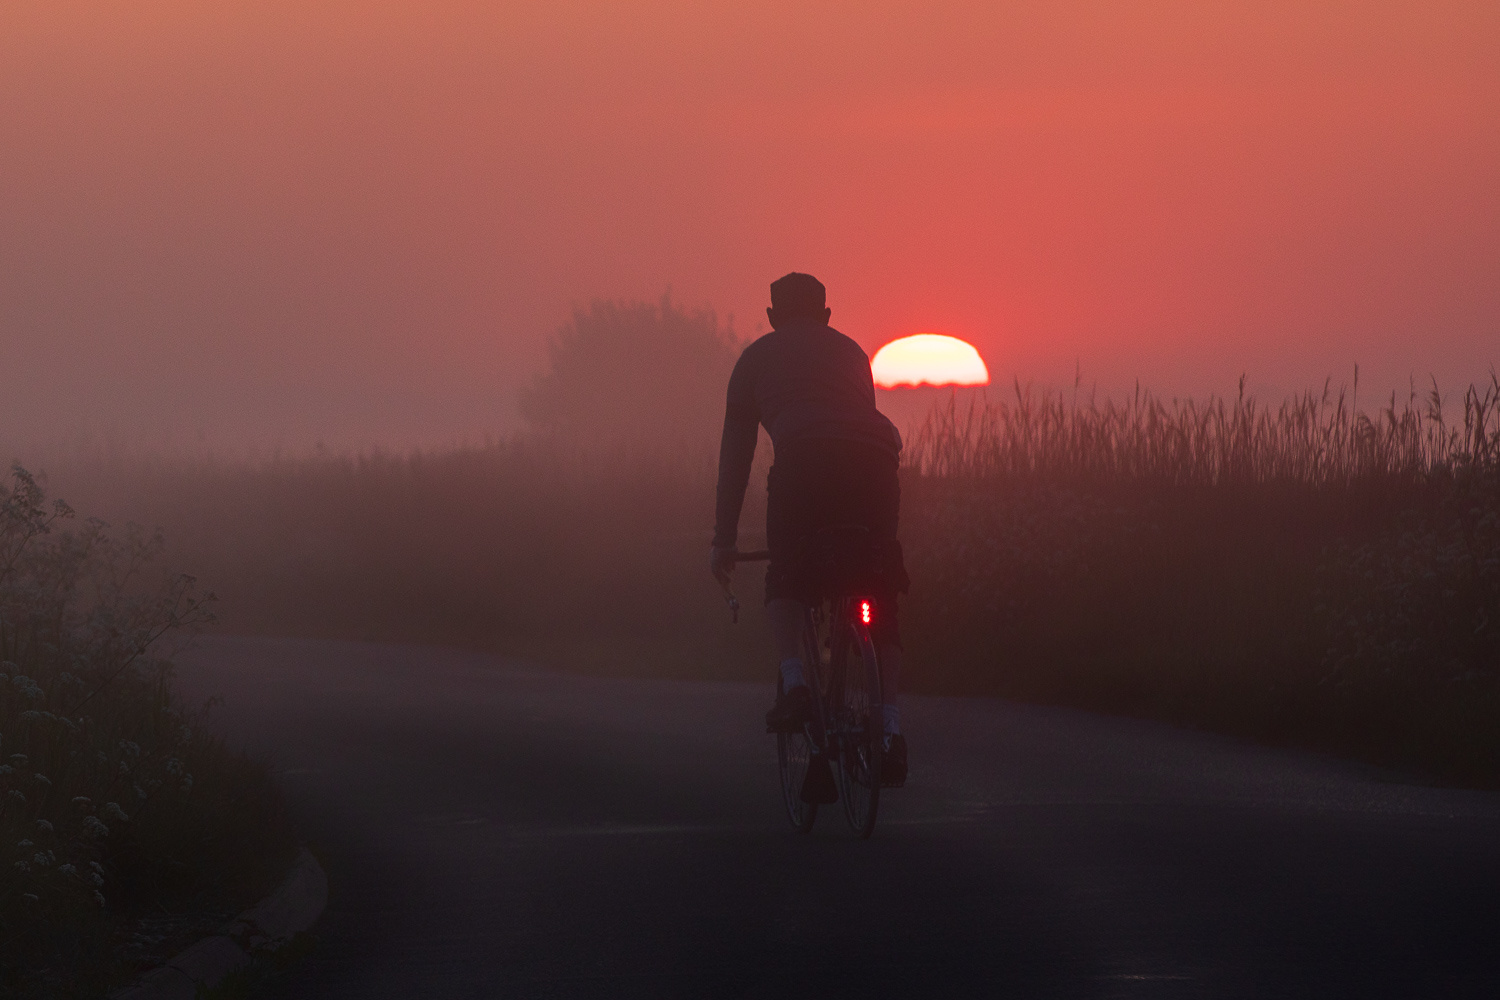 Red Sun in Morning - cyclist looking at glowing red sun rise